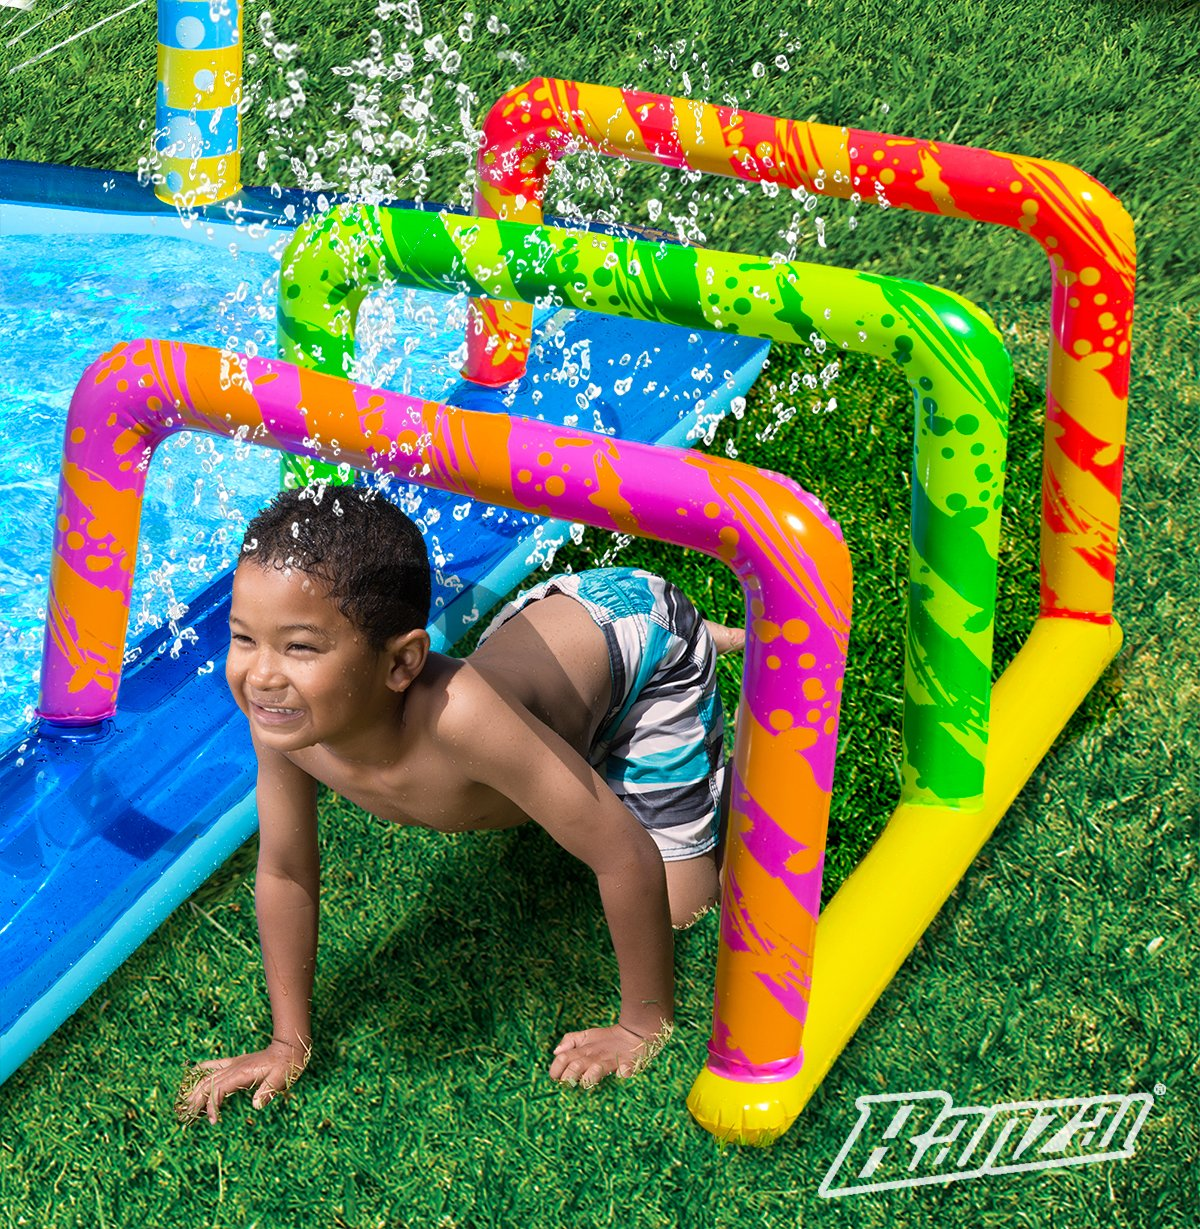 BANZAI Obstacle Course Activity Pool by BANZAI (Image #5)